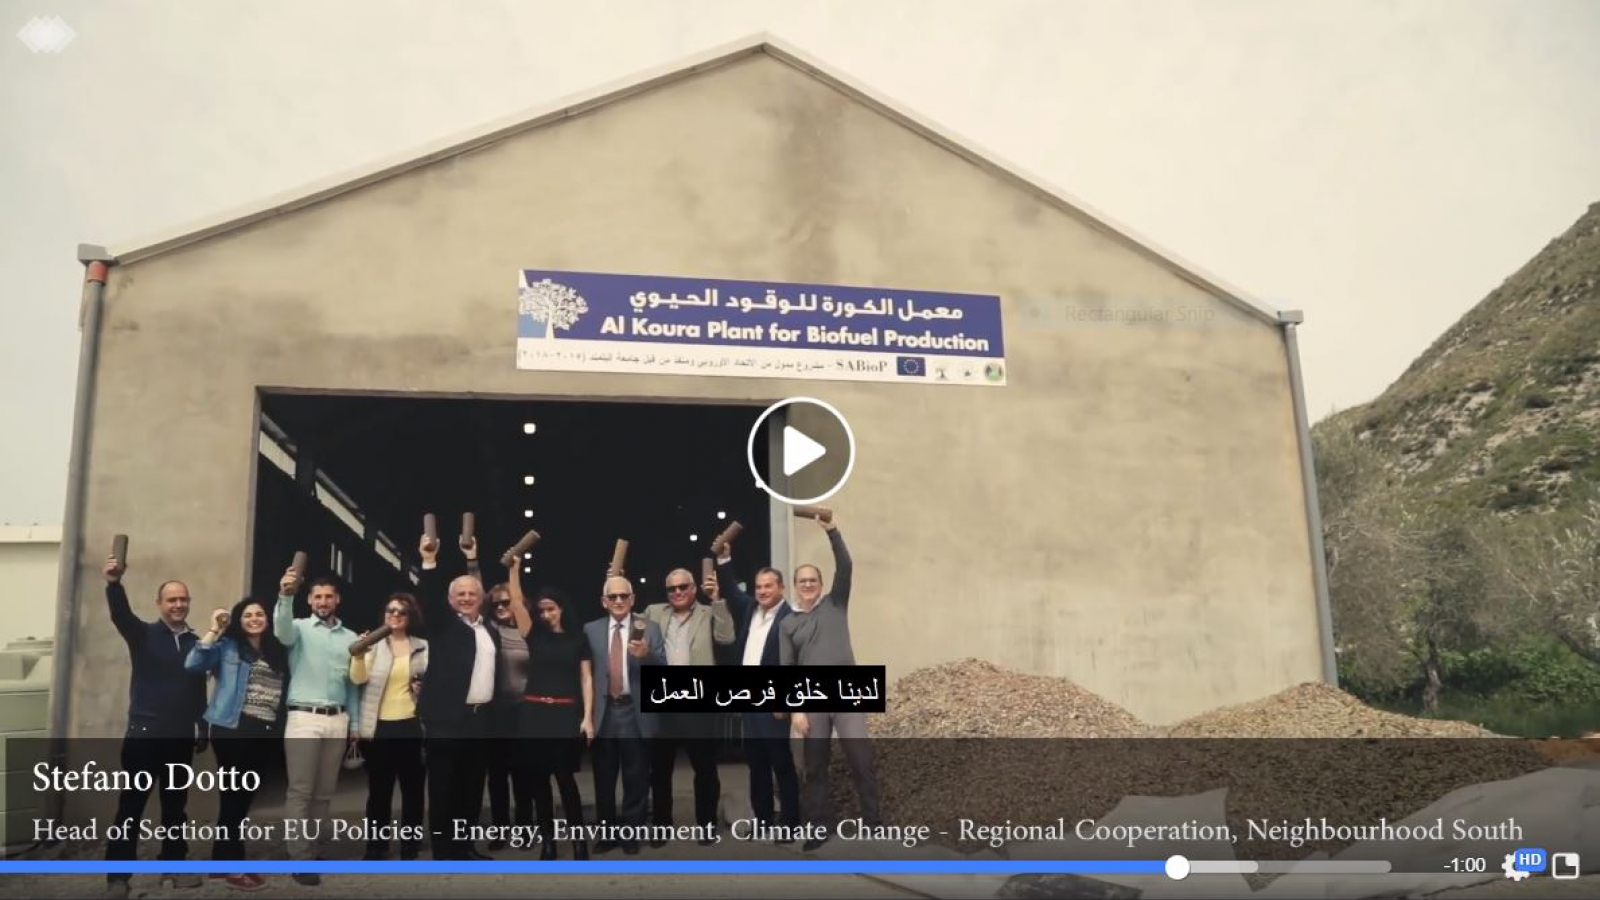 The Koura plant project in Lebanon